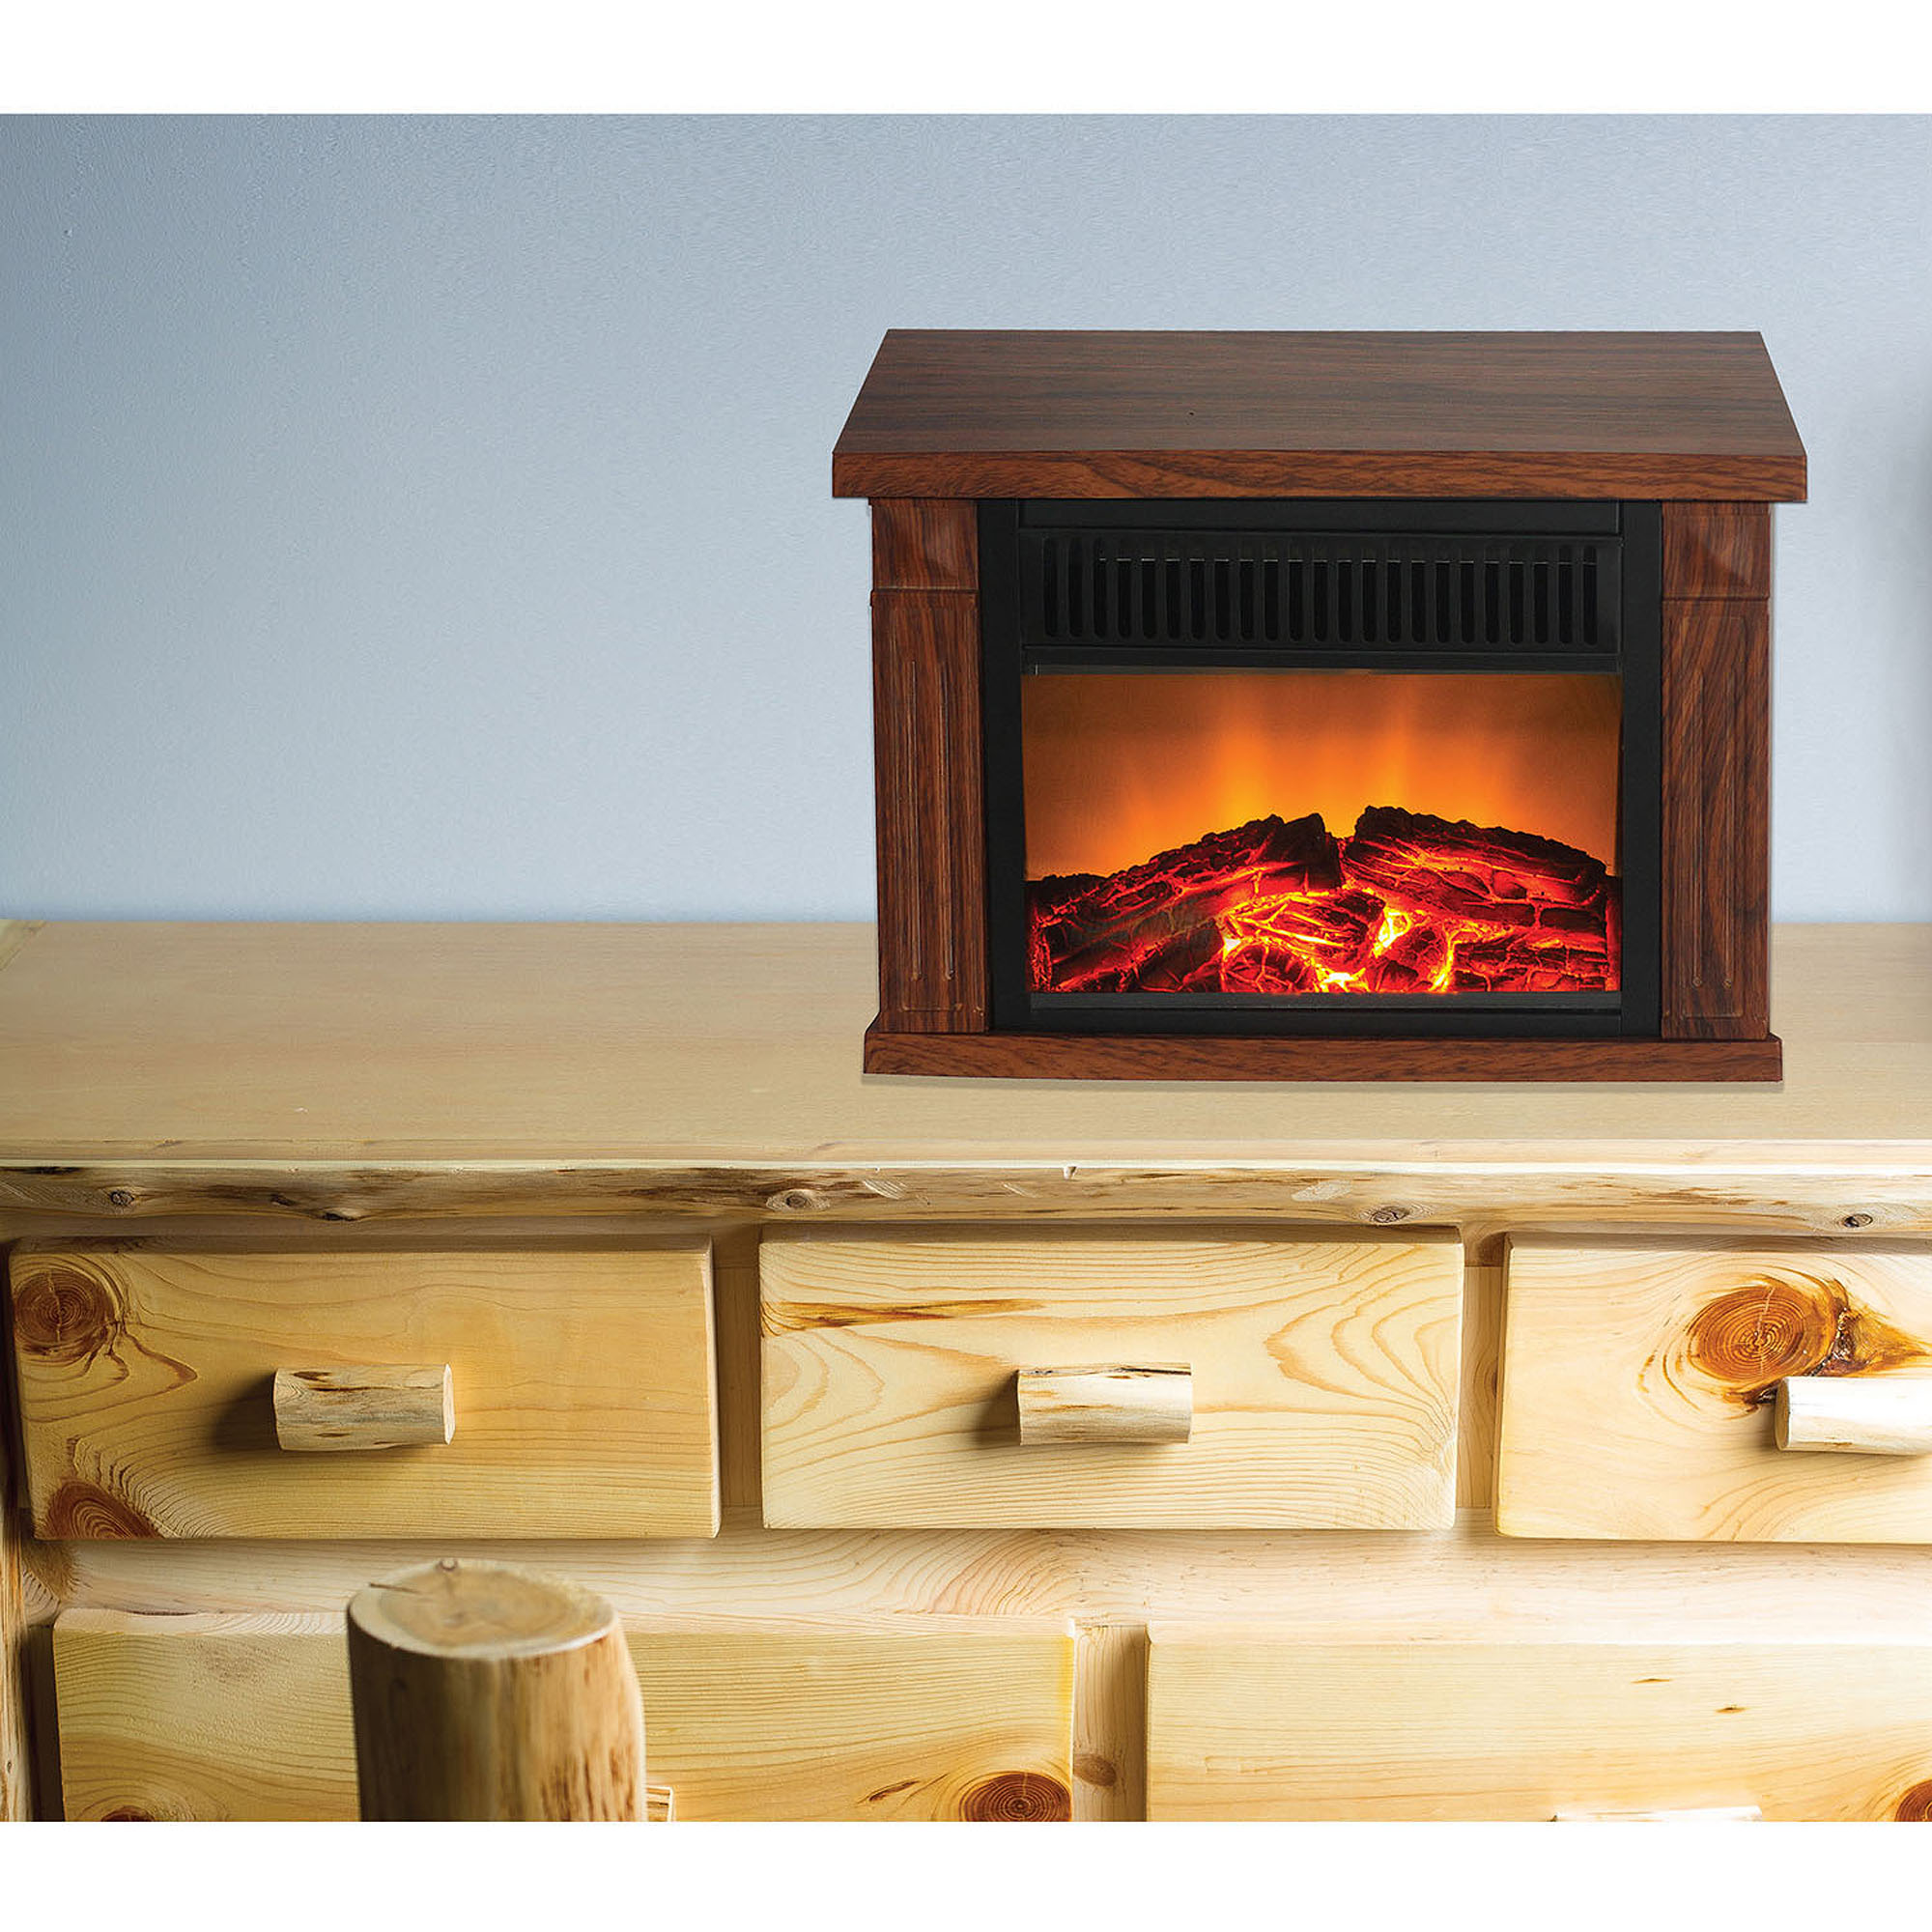 Free Shipping. Buy Warm House TZRF-10344 Zurich Tabletop Retro Electric Fireplace - Medium Wood-Print Finish at Walmart.com